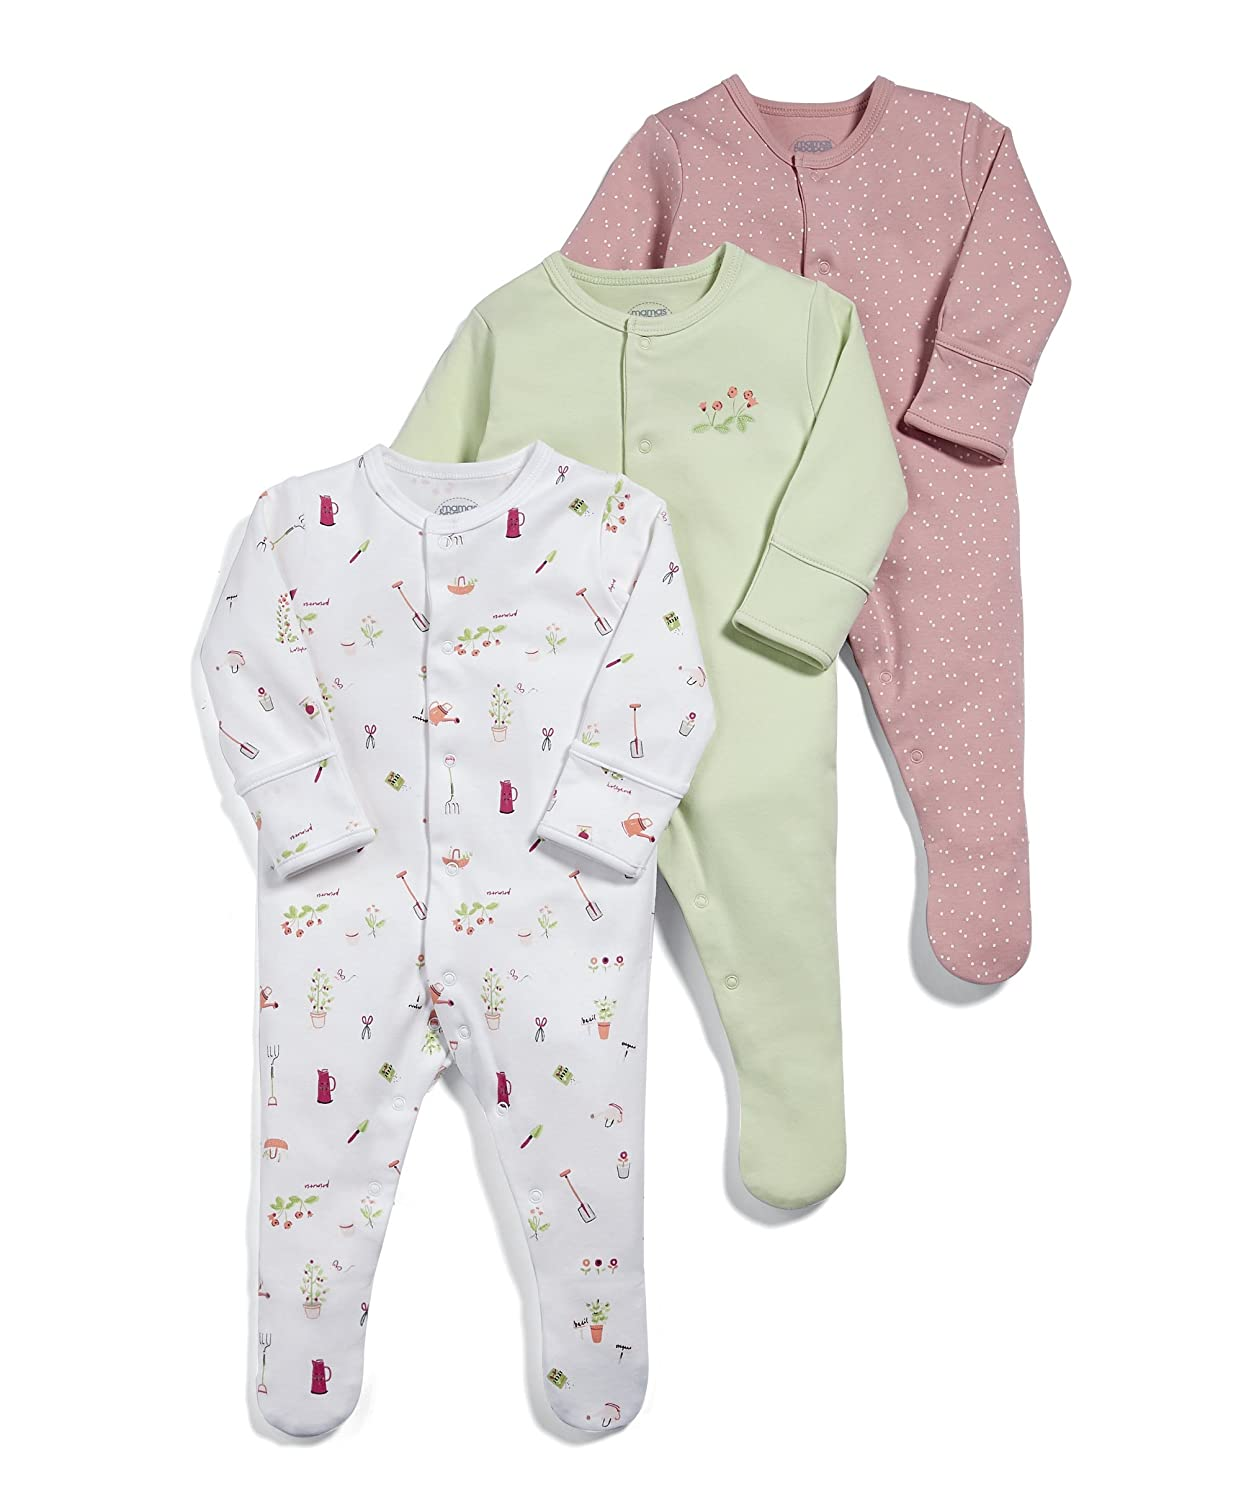 Mamas & Papas Baby Girls' Sleepsuits Pack of 3 Green 0-3 Months pack of 3 Mamas and Papas S79FCW6B2